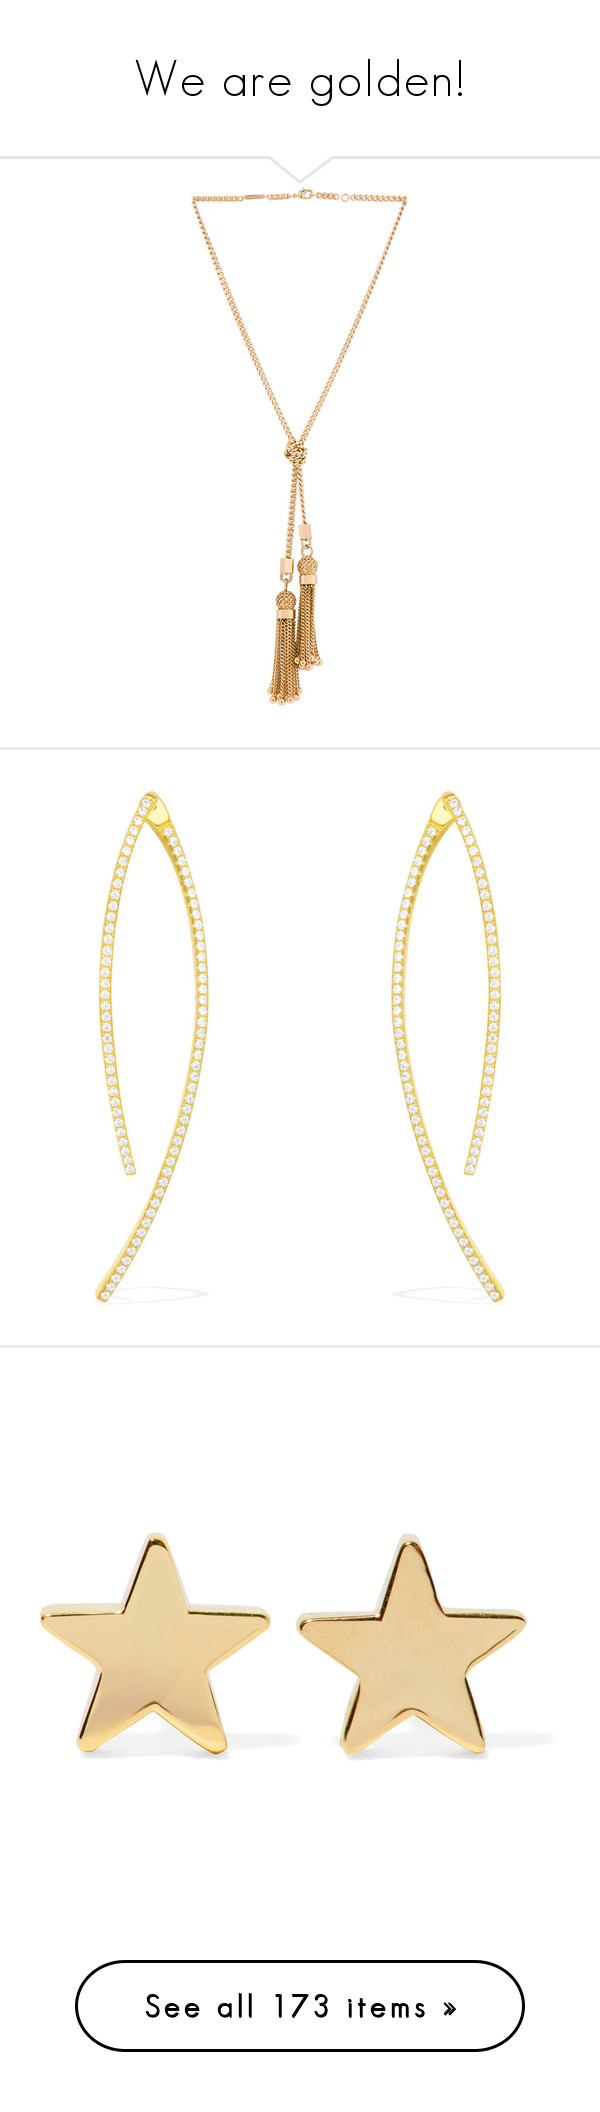 """We are golden!"" by rafieldshow ❤ liked on Polyvore featuring jewelry, necklaces, accessories, lariat necklaces, chain link necklace, chloe jewelry, chain link jewelry, tassle necklace, earrings and silver earrings"